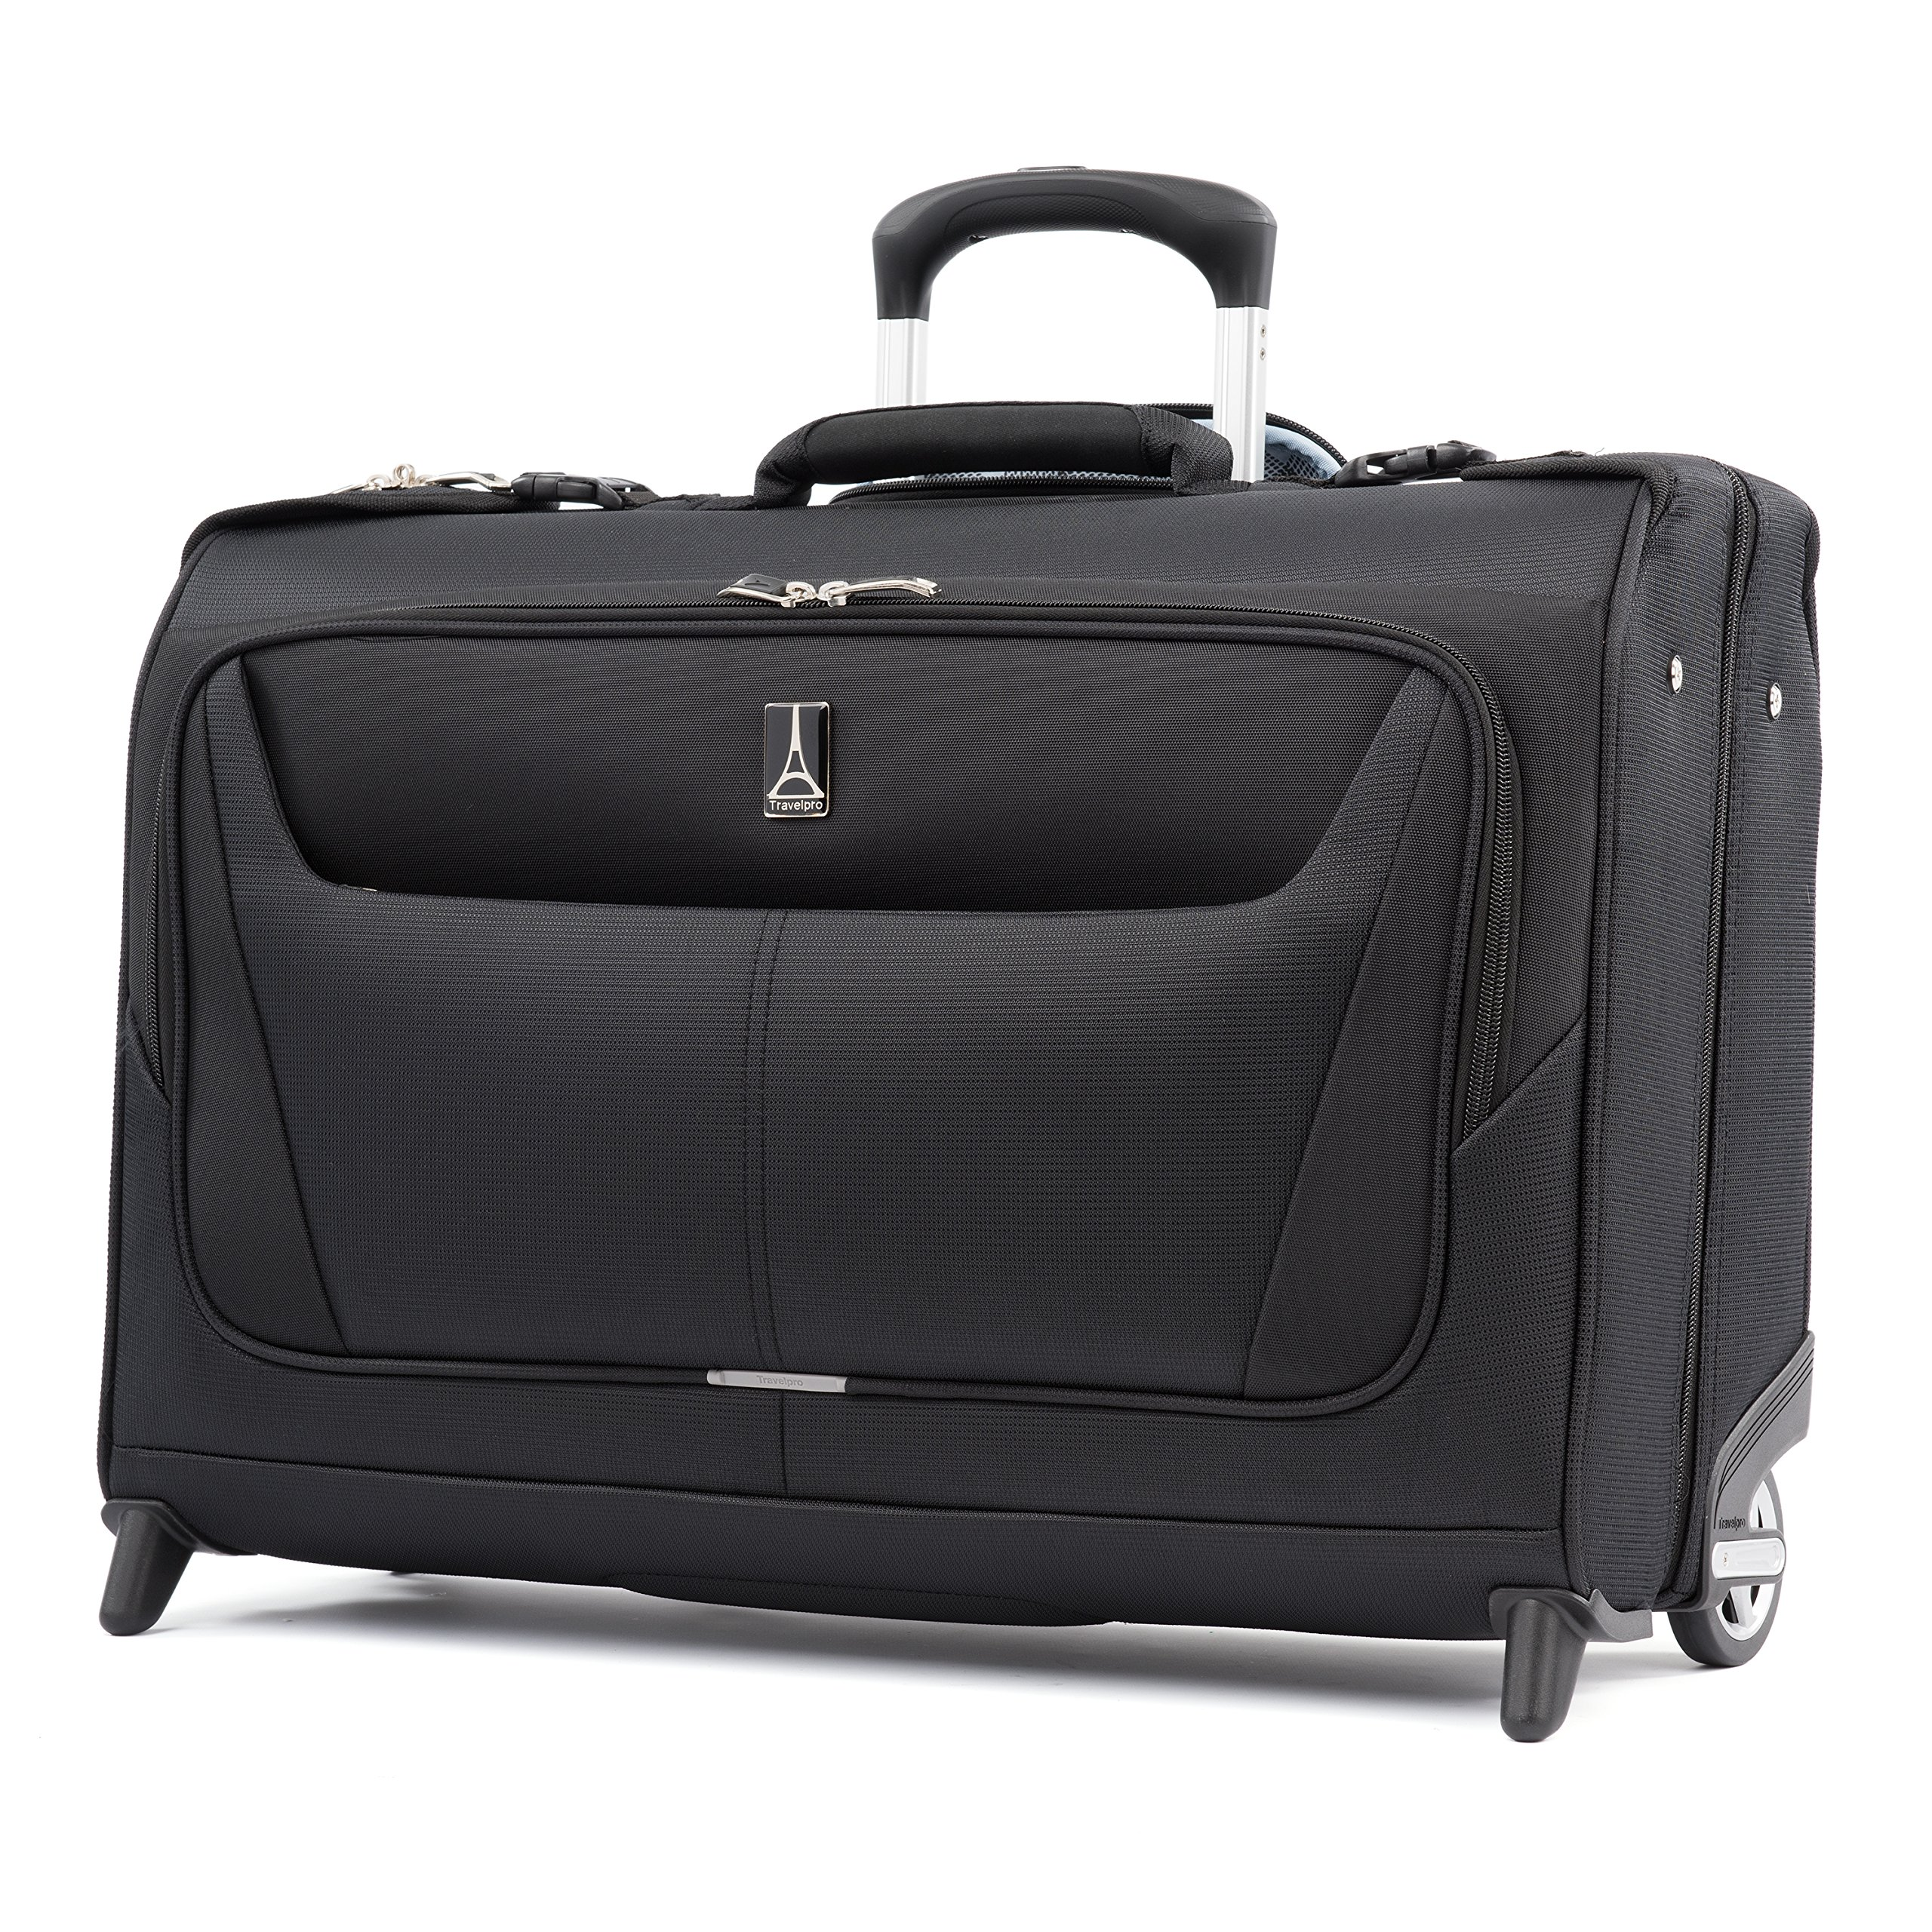 Travelpro Luggage Lightweight Carry-on Rolling Garment Bag